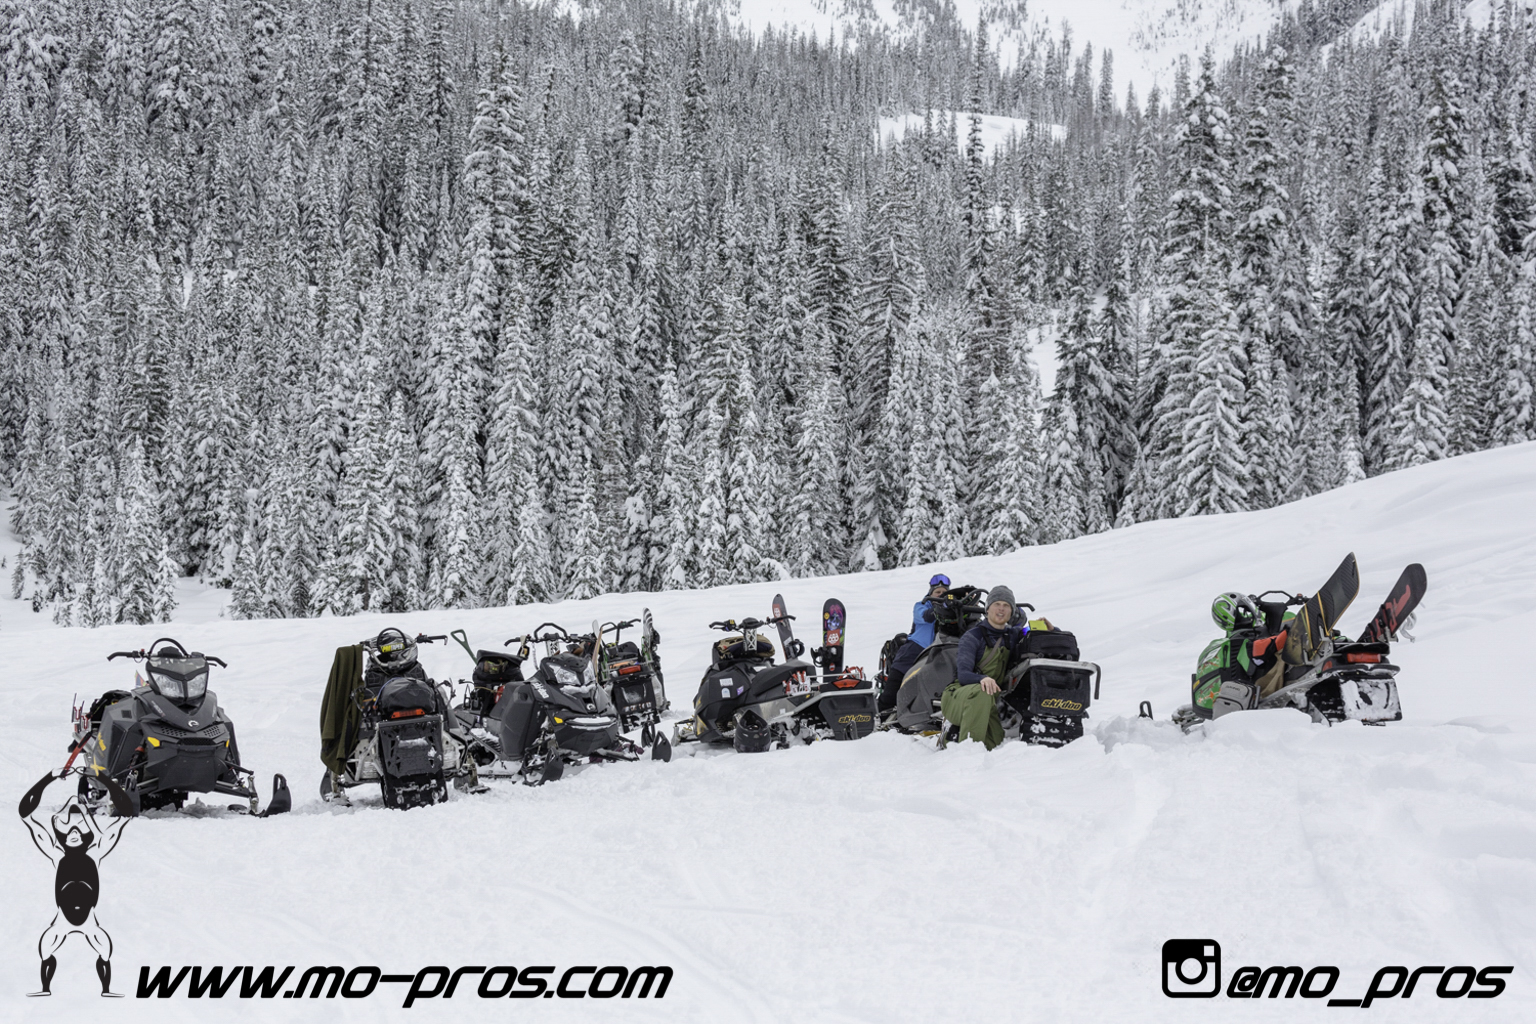 58_CFR rack_Cheetah Factory Racing_Snowboard rack_snowboard_snowmobile bag_Snowmobile_timbersled bag_gas Rack_Gear_Gun Rack_LinQ Snowboard Ski_Ski_Snowbike_Timbersled Rack_Tsaina Rack_Snowboarding_Ti.jpg